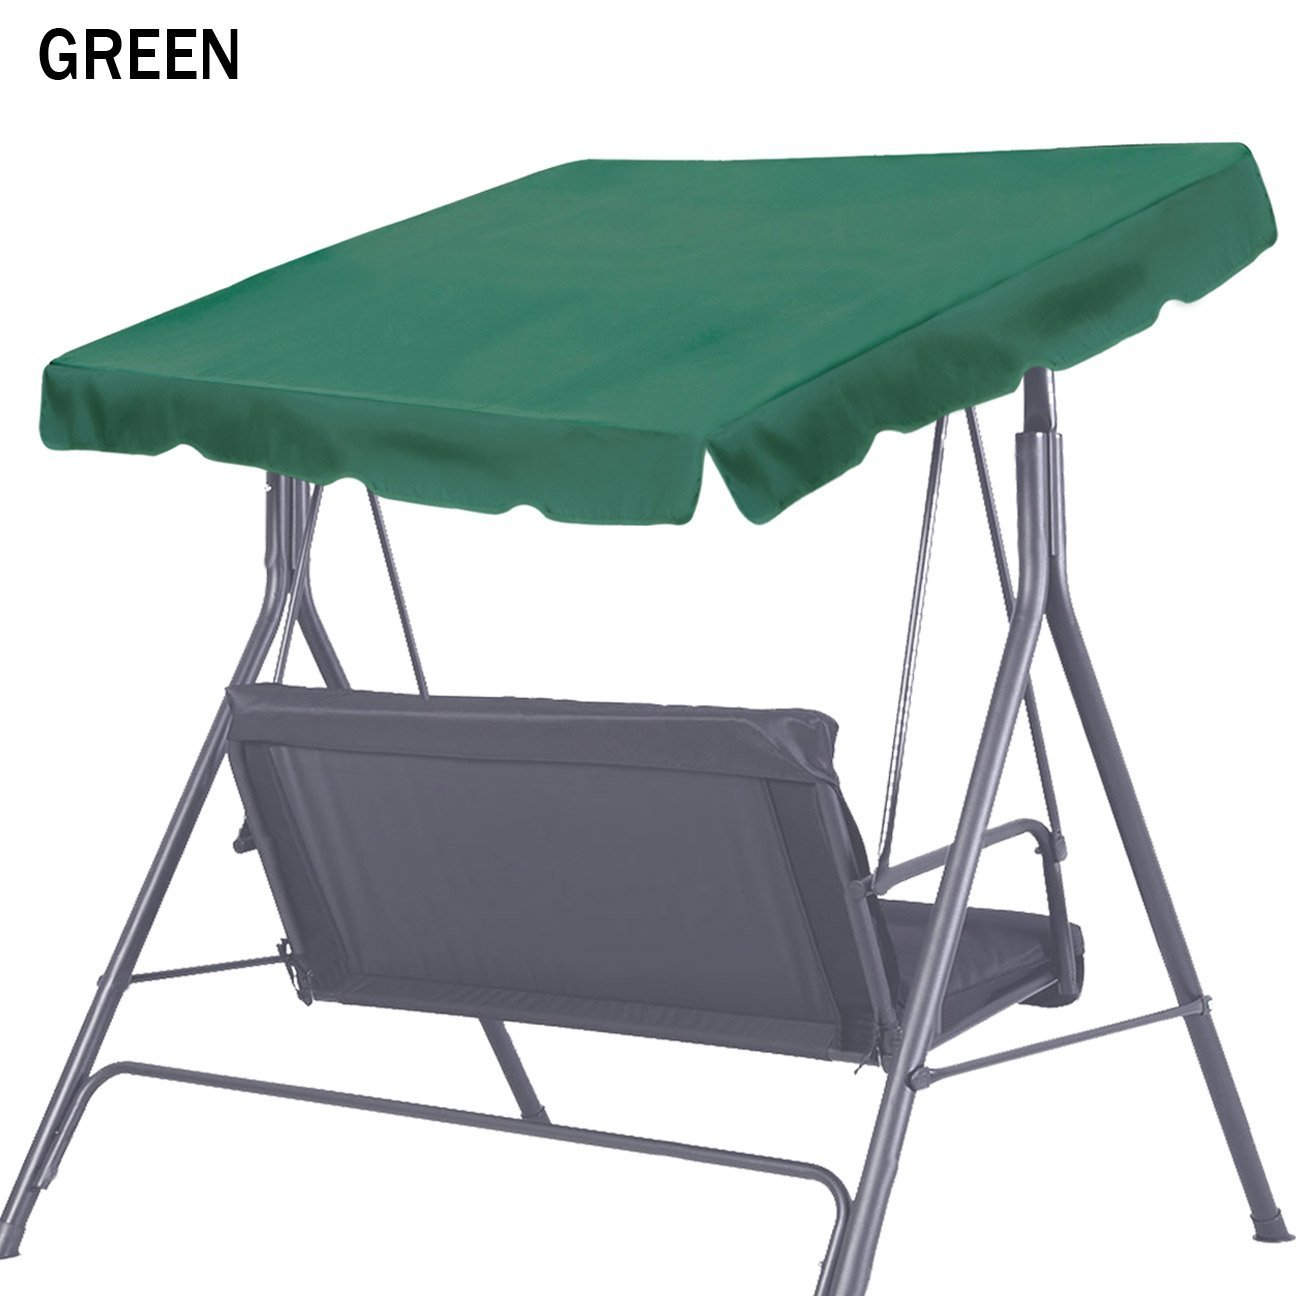 Strong Camel New Patio Outdoor Swing Canopy Replacement Porch Top Cover for Seat Furniture (73''x52, Green) by Strong Camel